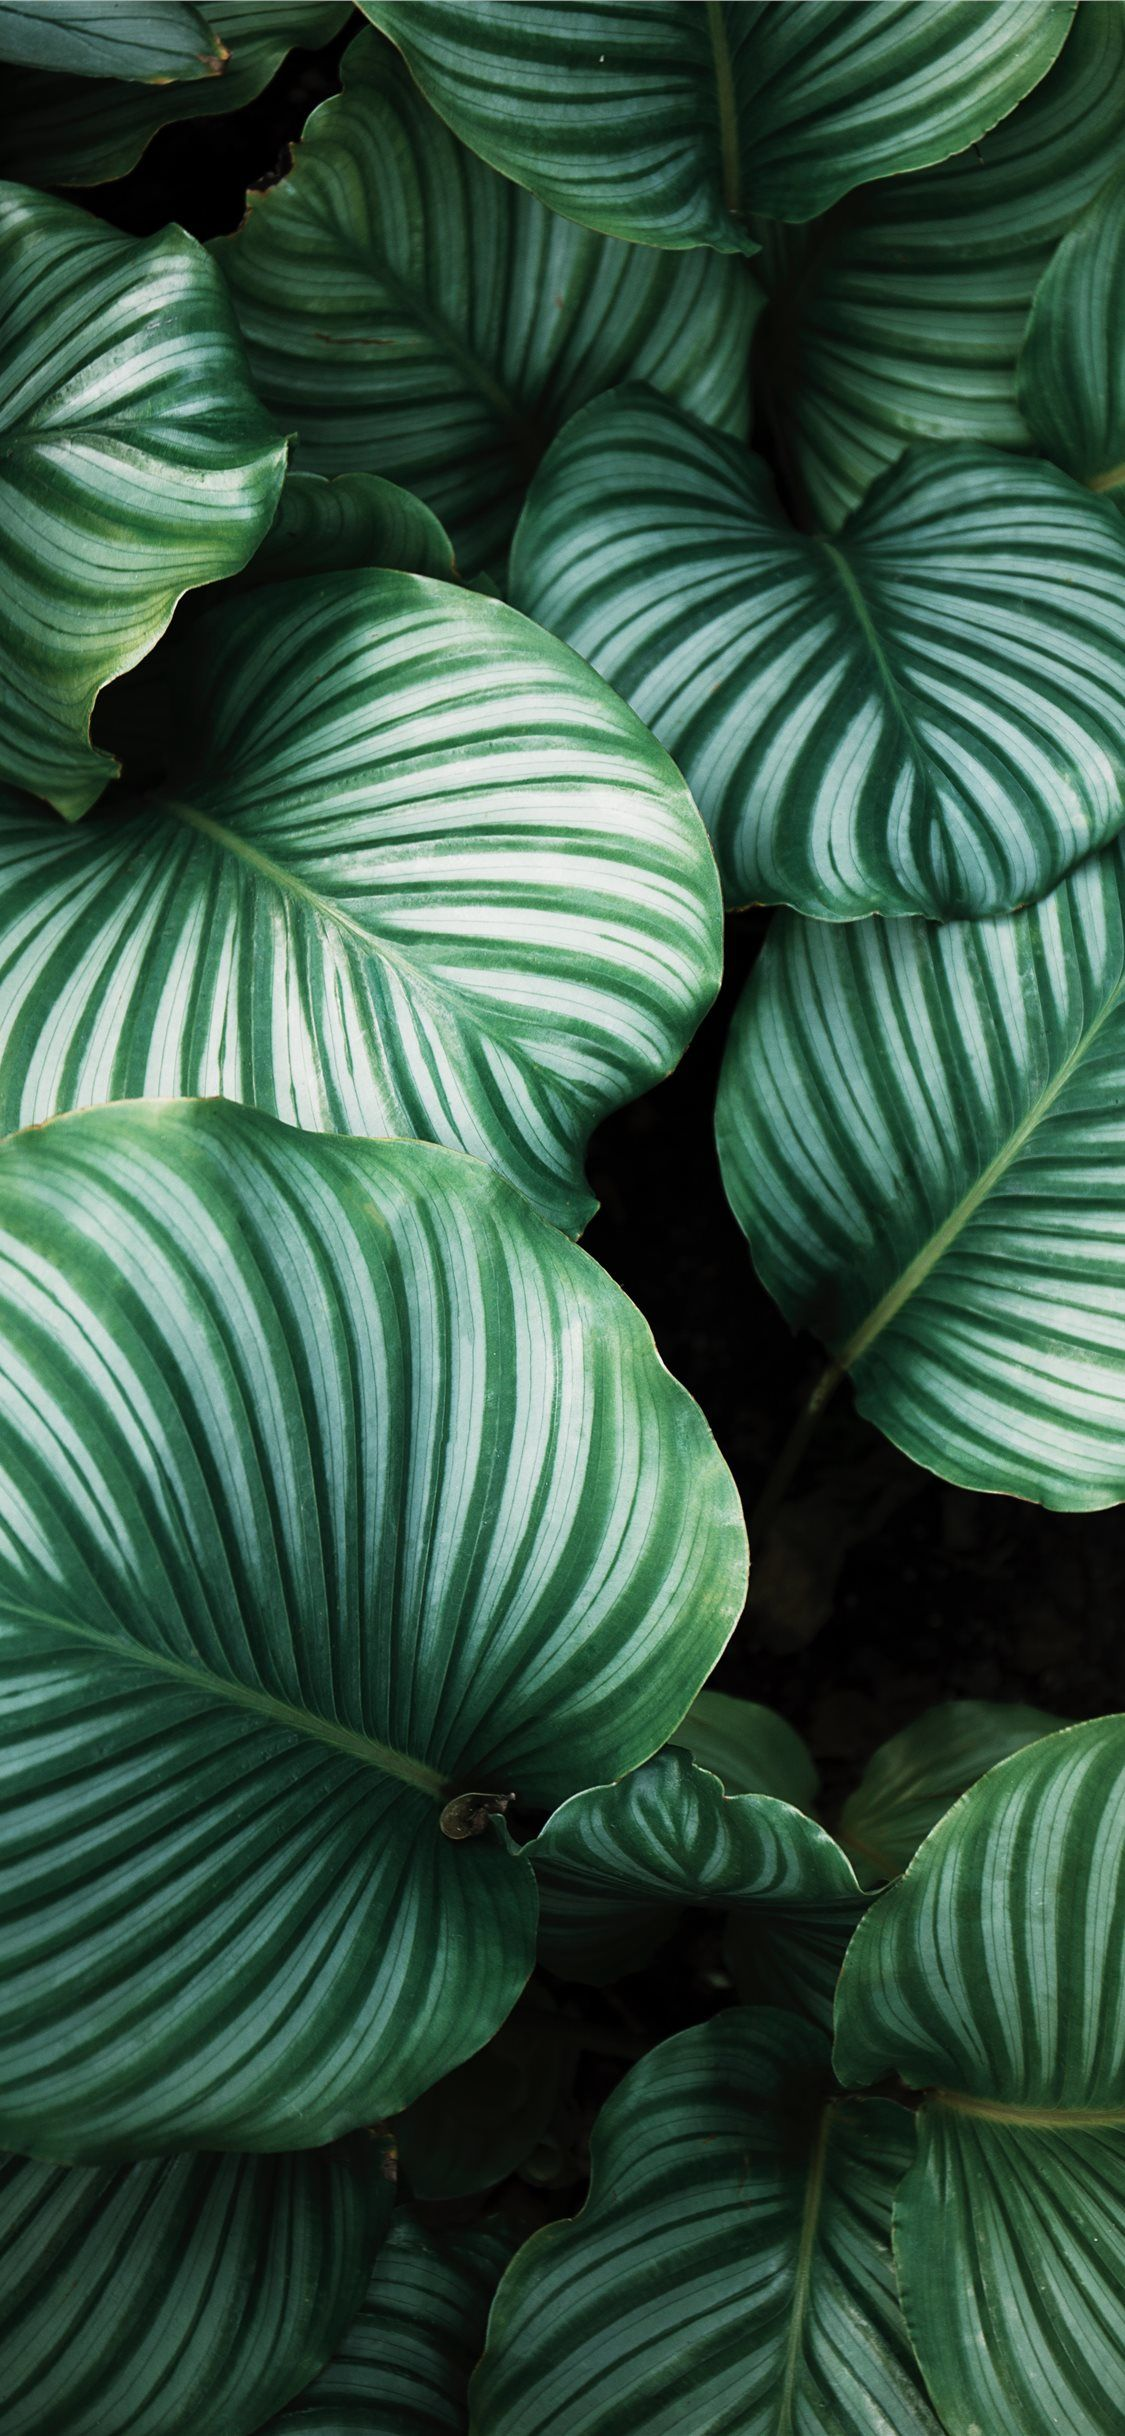 Plant Iphone Wallpapers Top Free Plant Iphone Backgrounds Wallpaperaccess